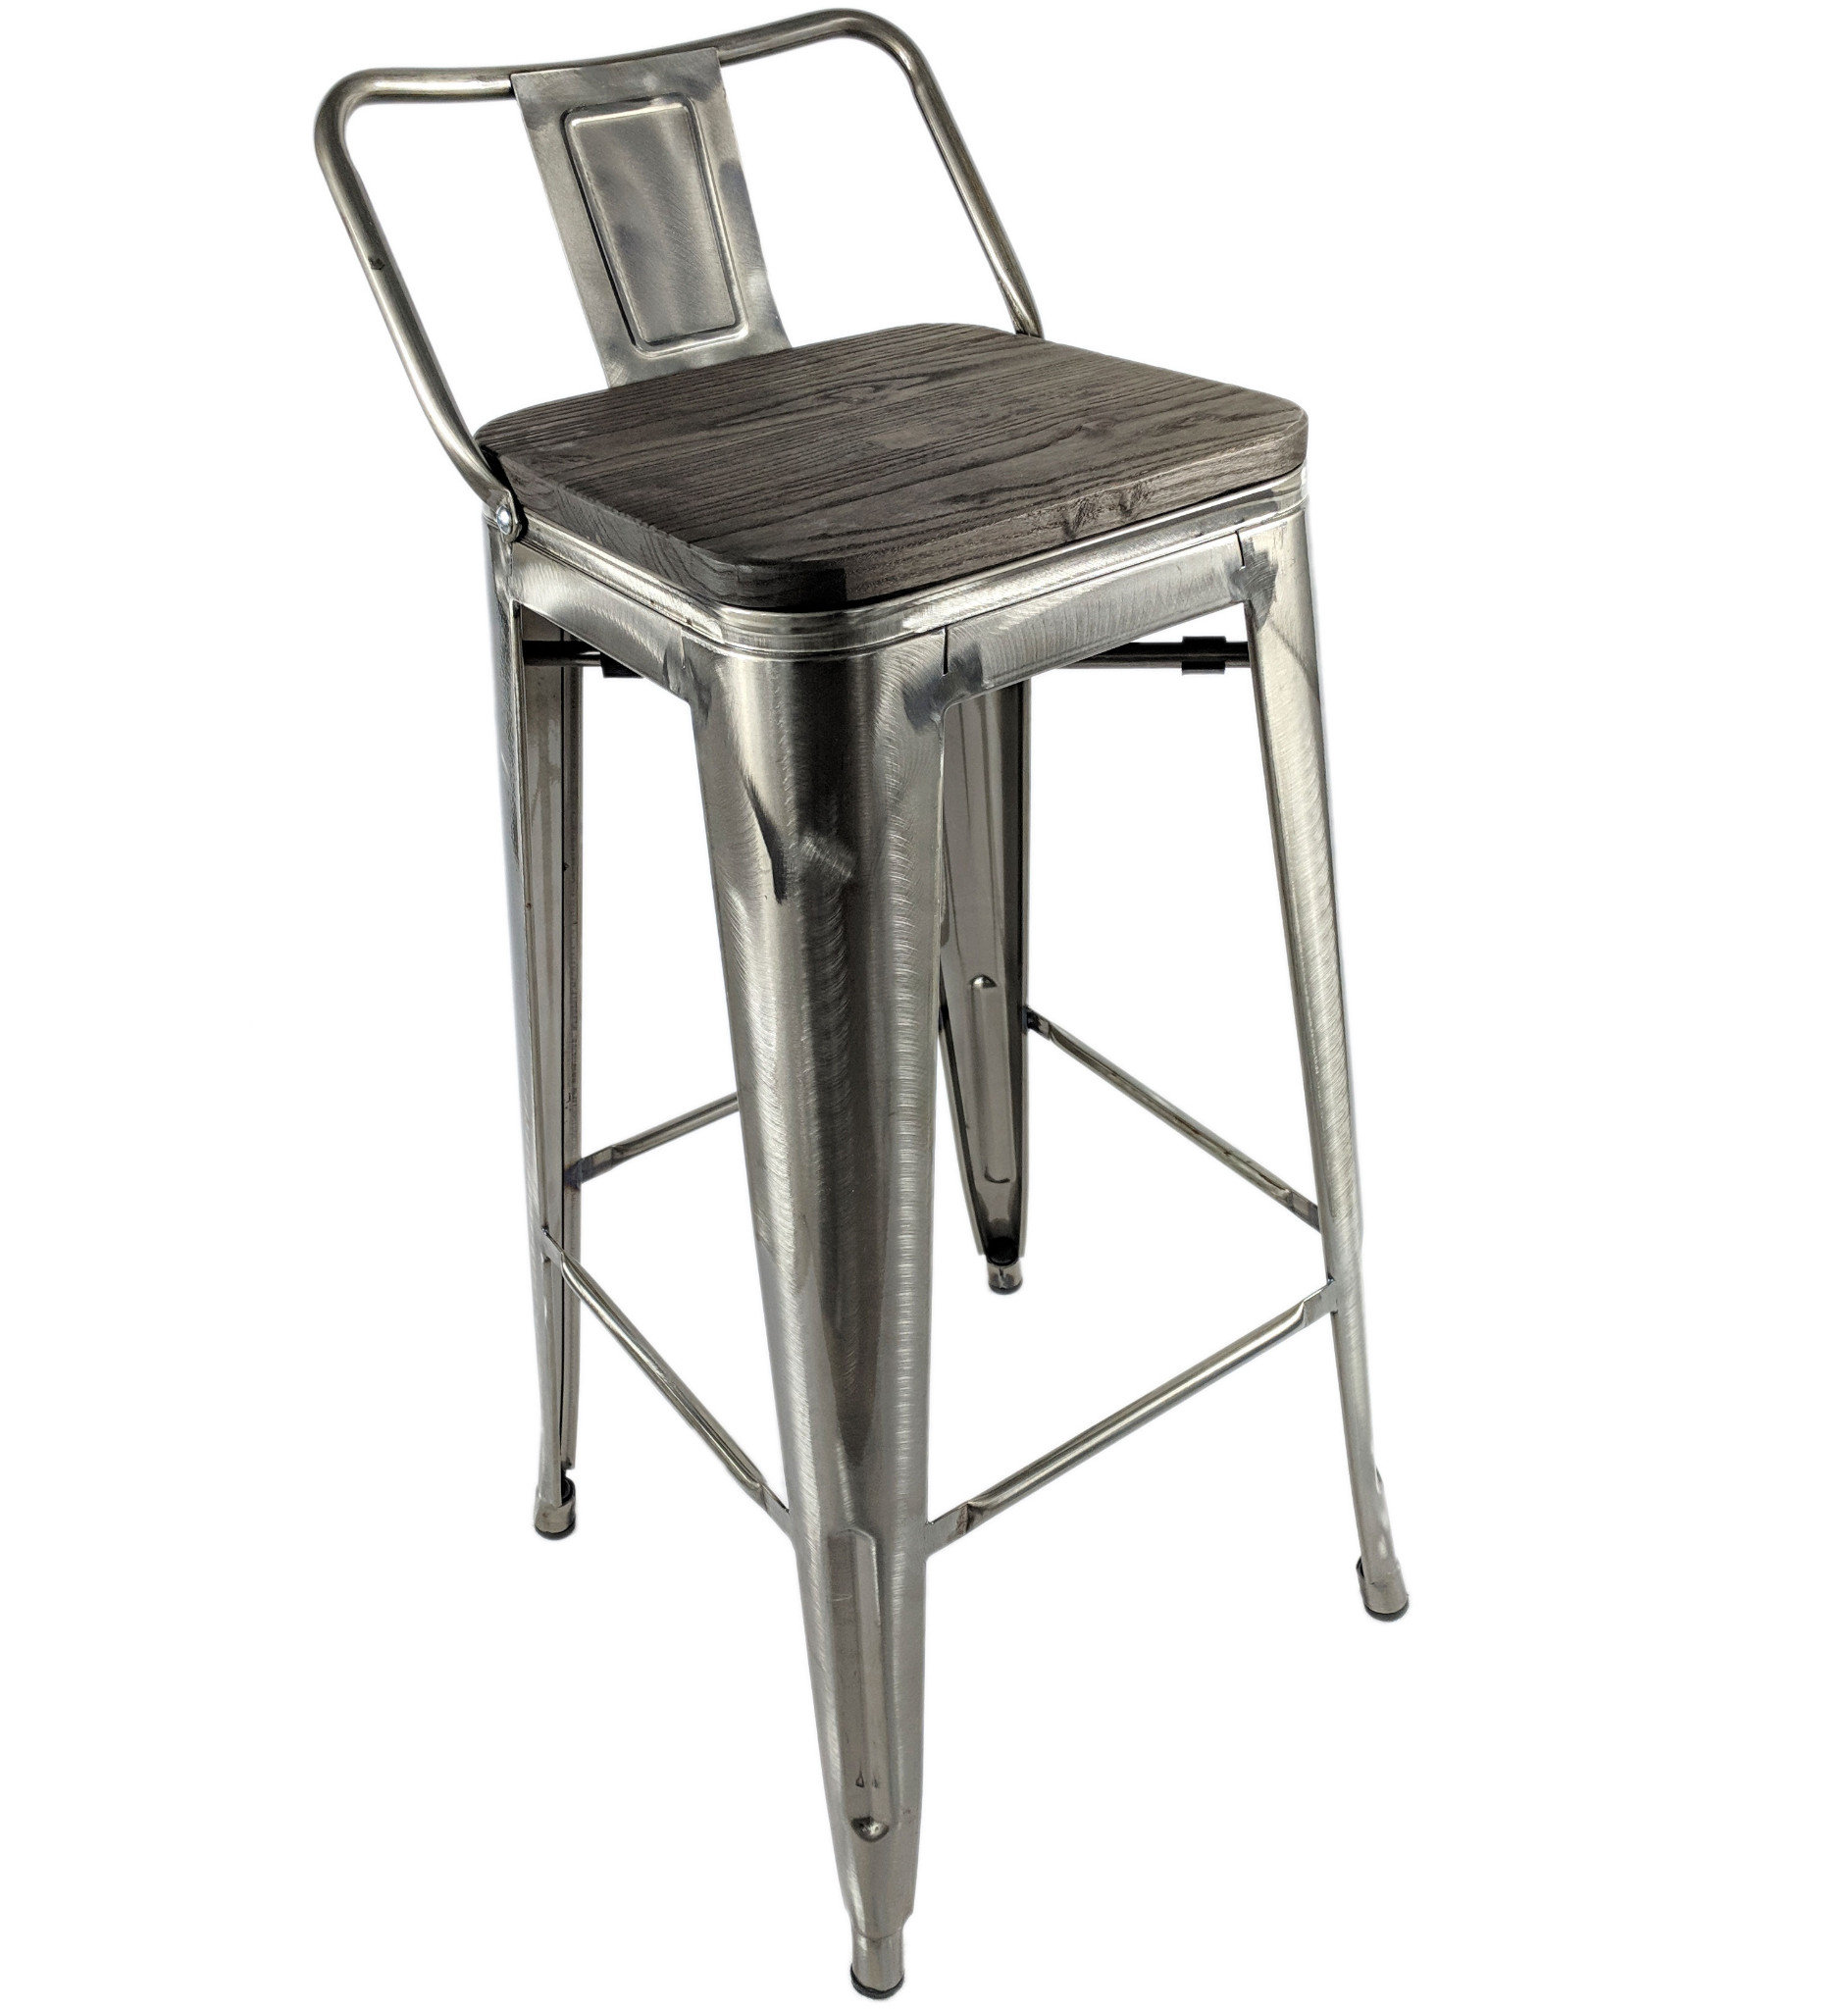 Swell Tolix Brushed Steel Metal Stool Wood Seat Retro Bistro Cafe Gmtry Best Dining Table And Chair Ideas Images Gmtryco